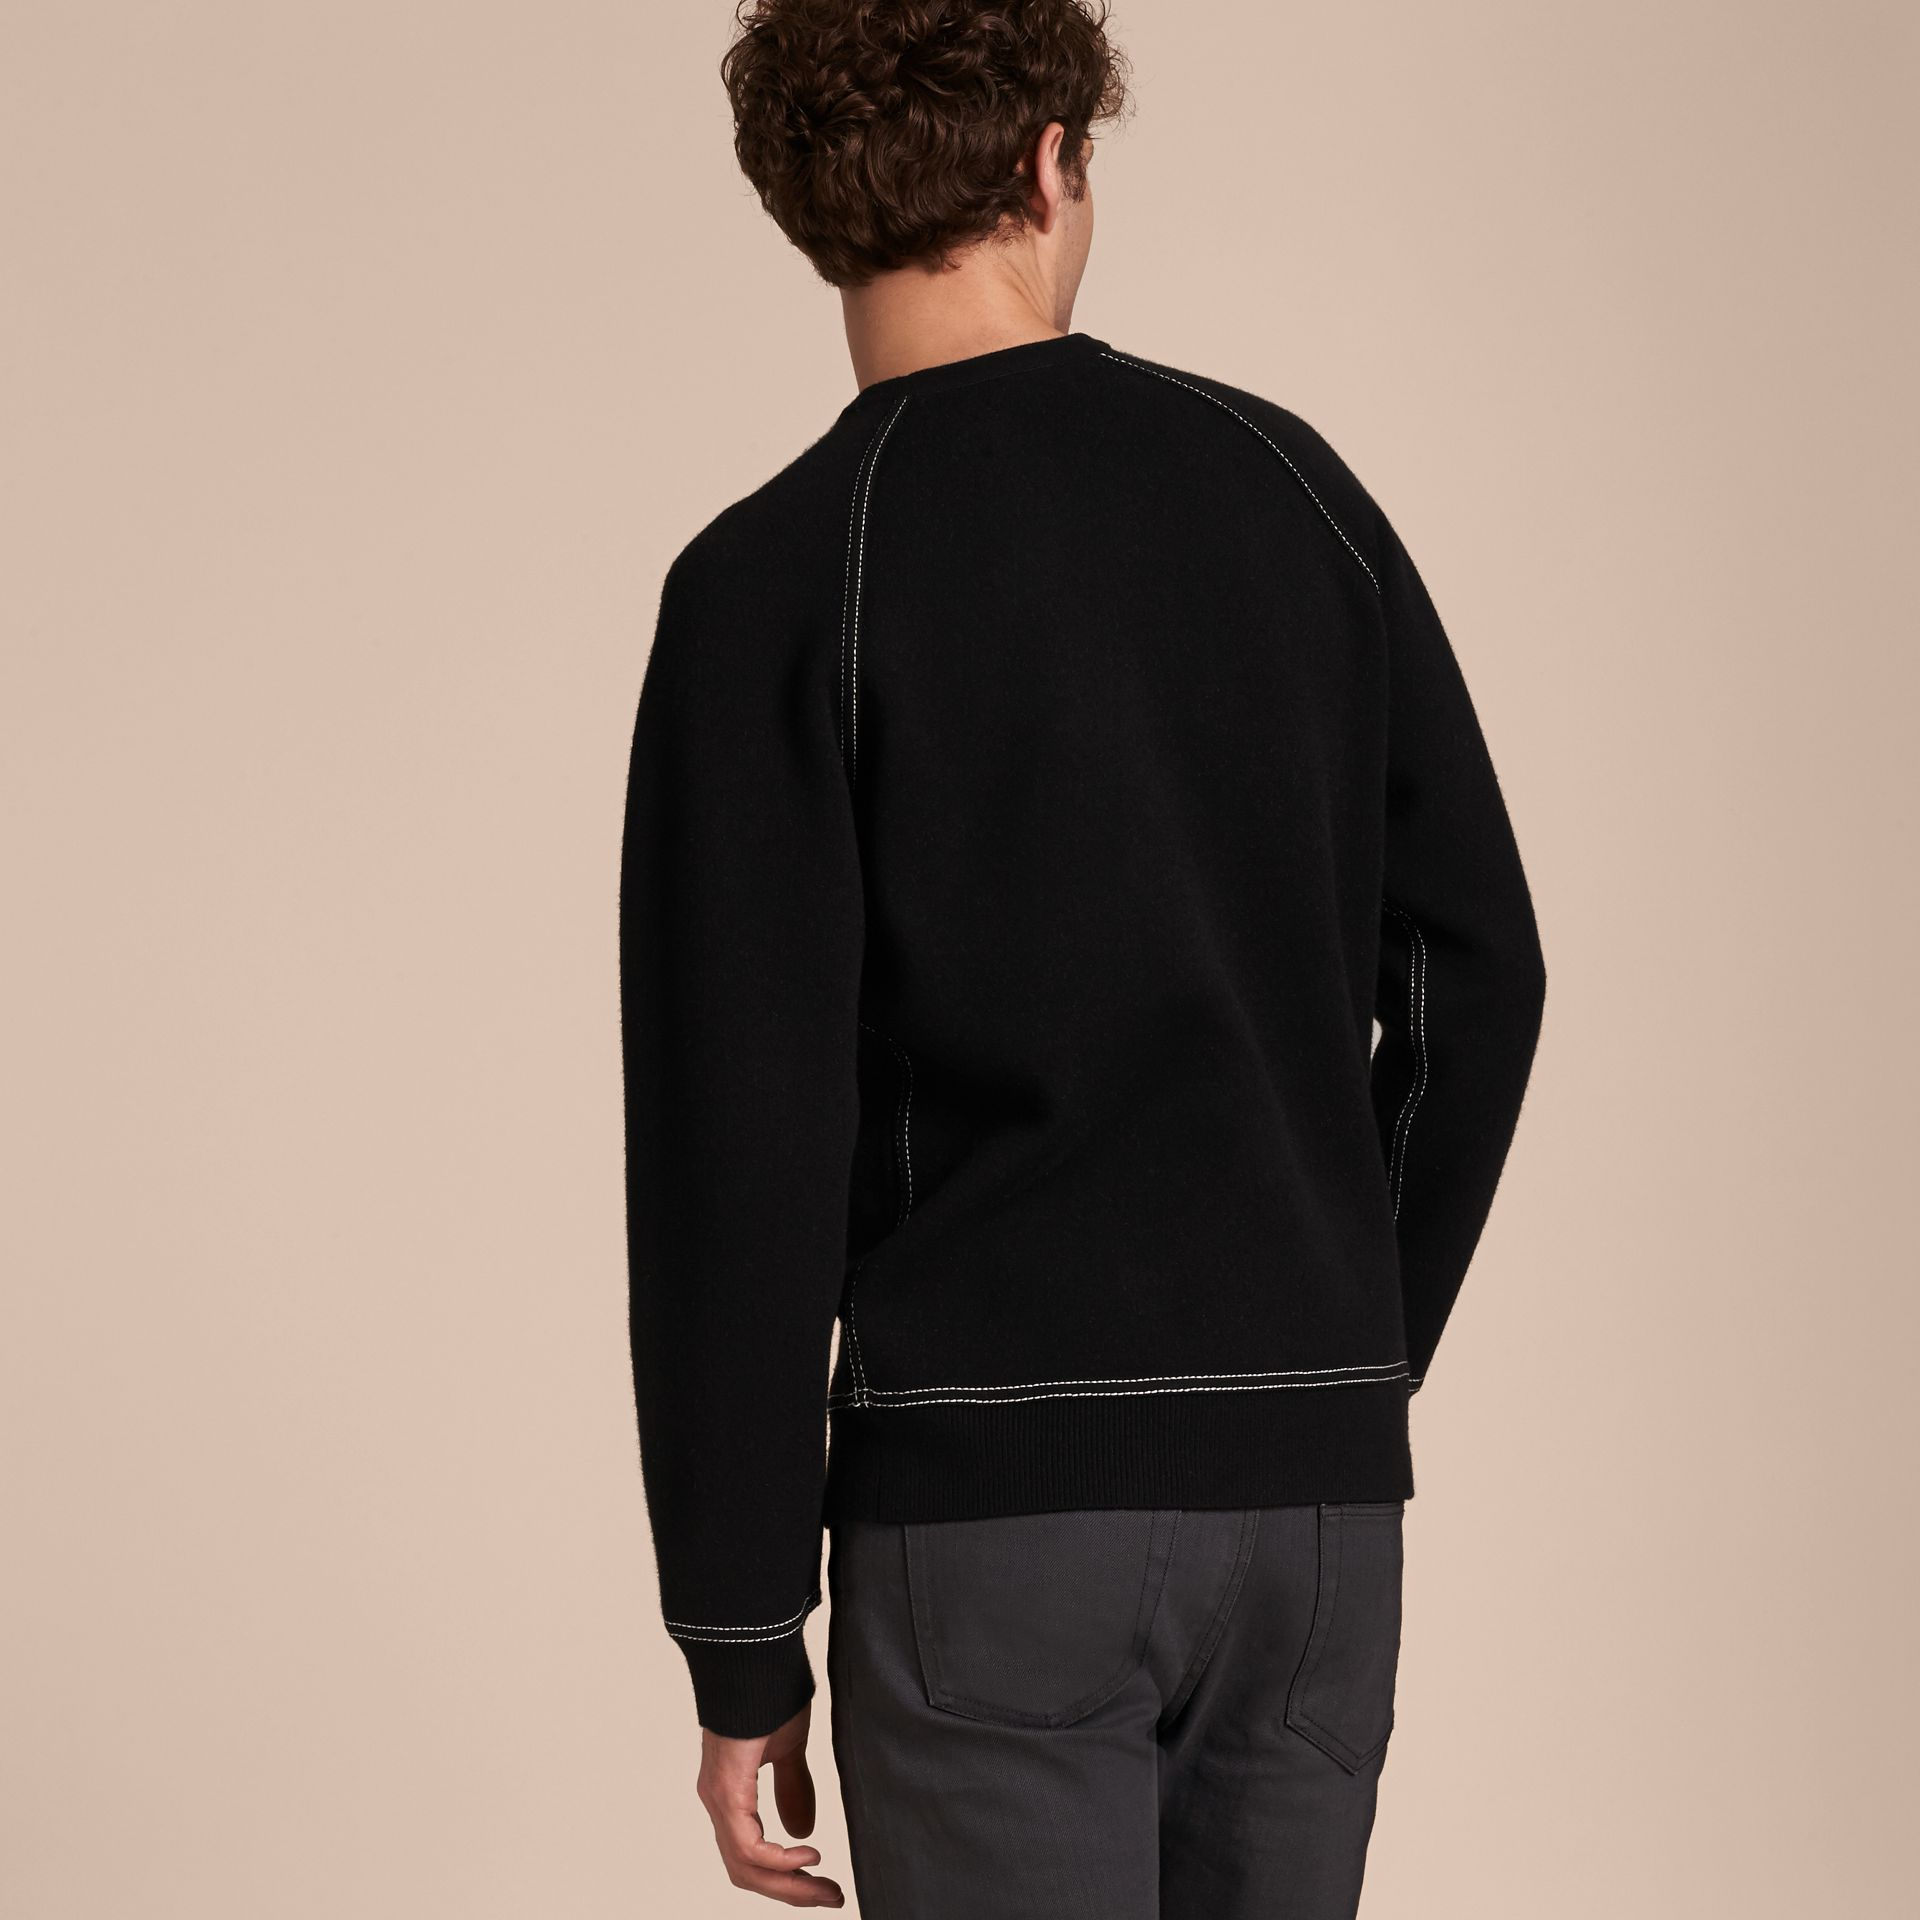 Topstitch Detail Wool Cashmere Blend Sweatshirt Black - gallery image 3